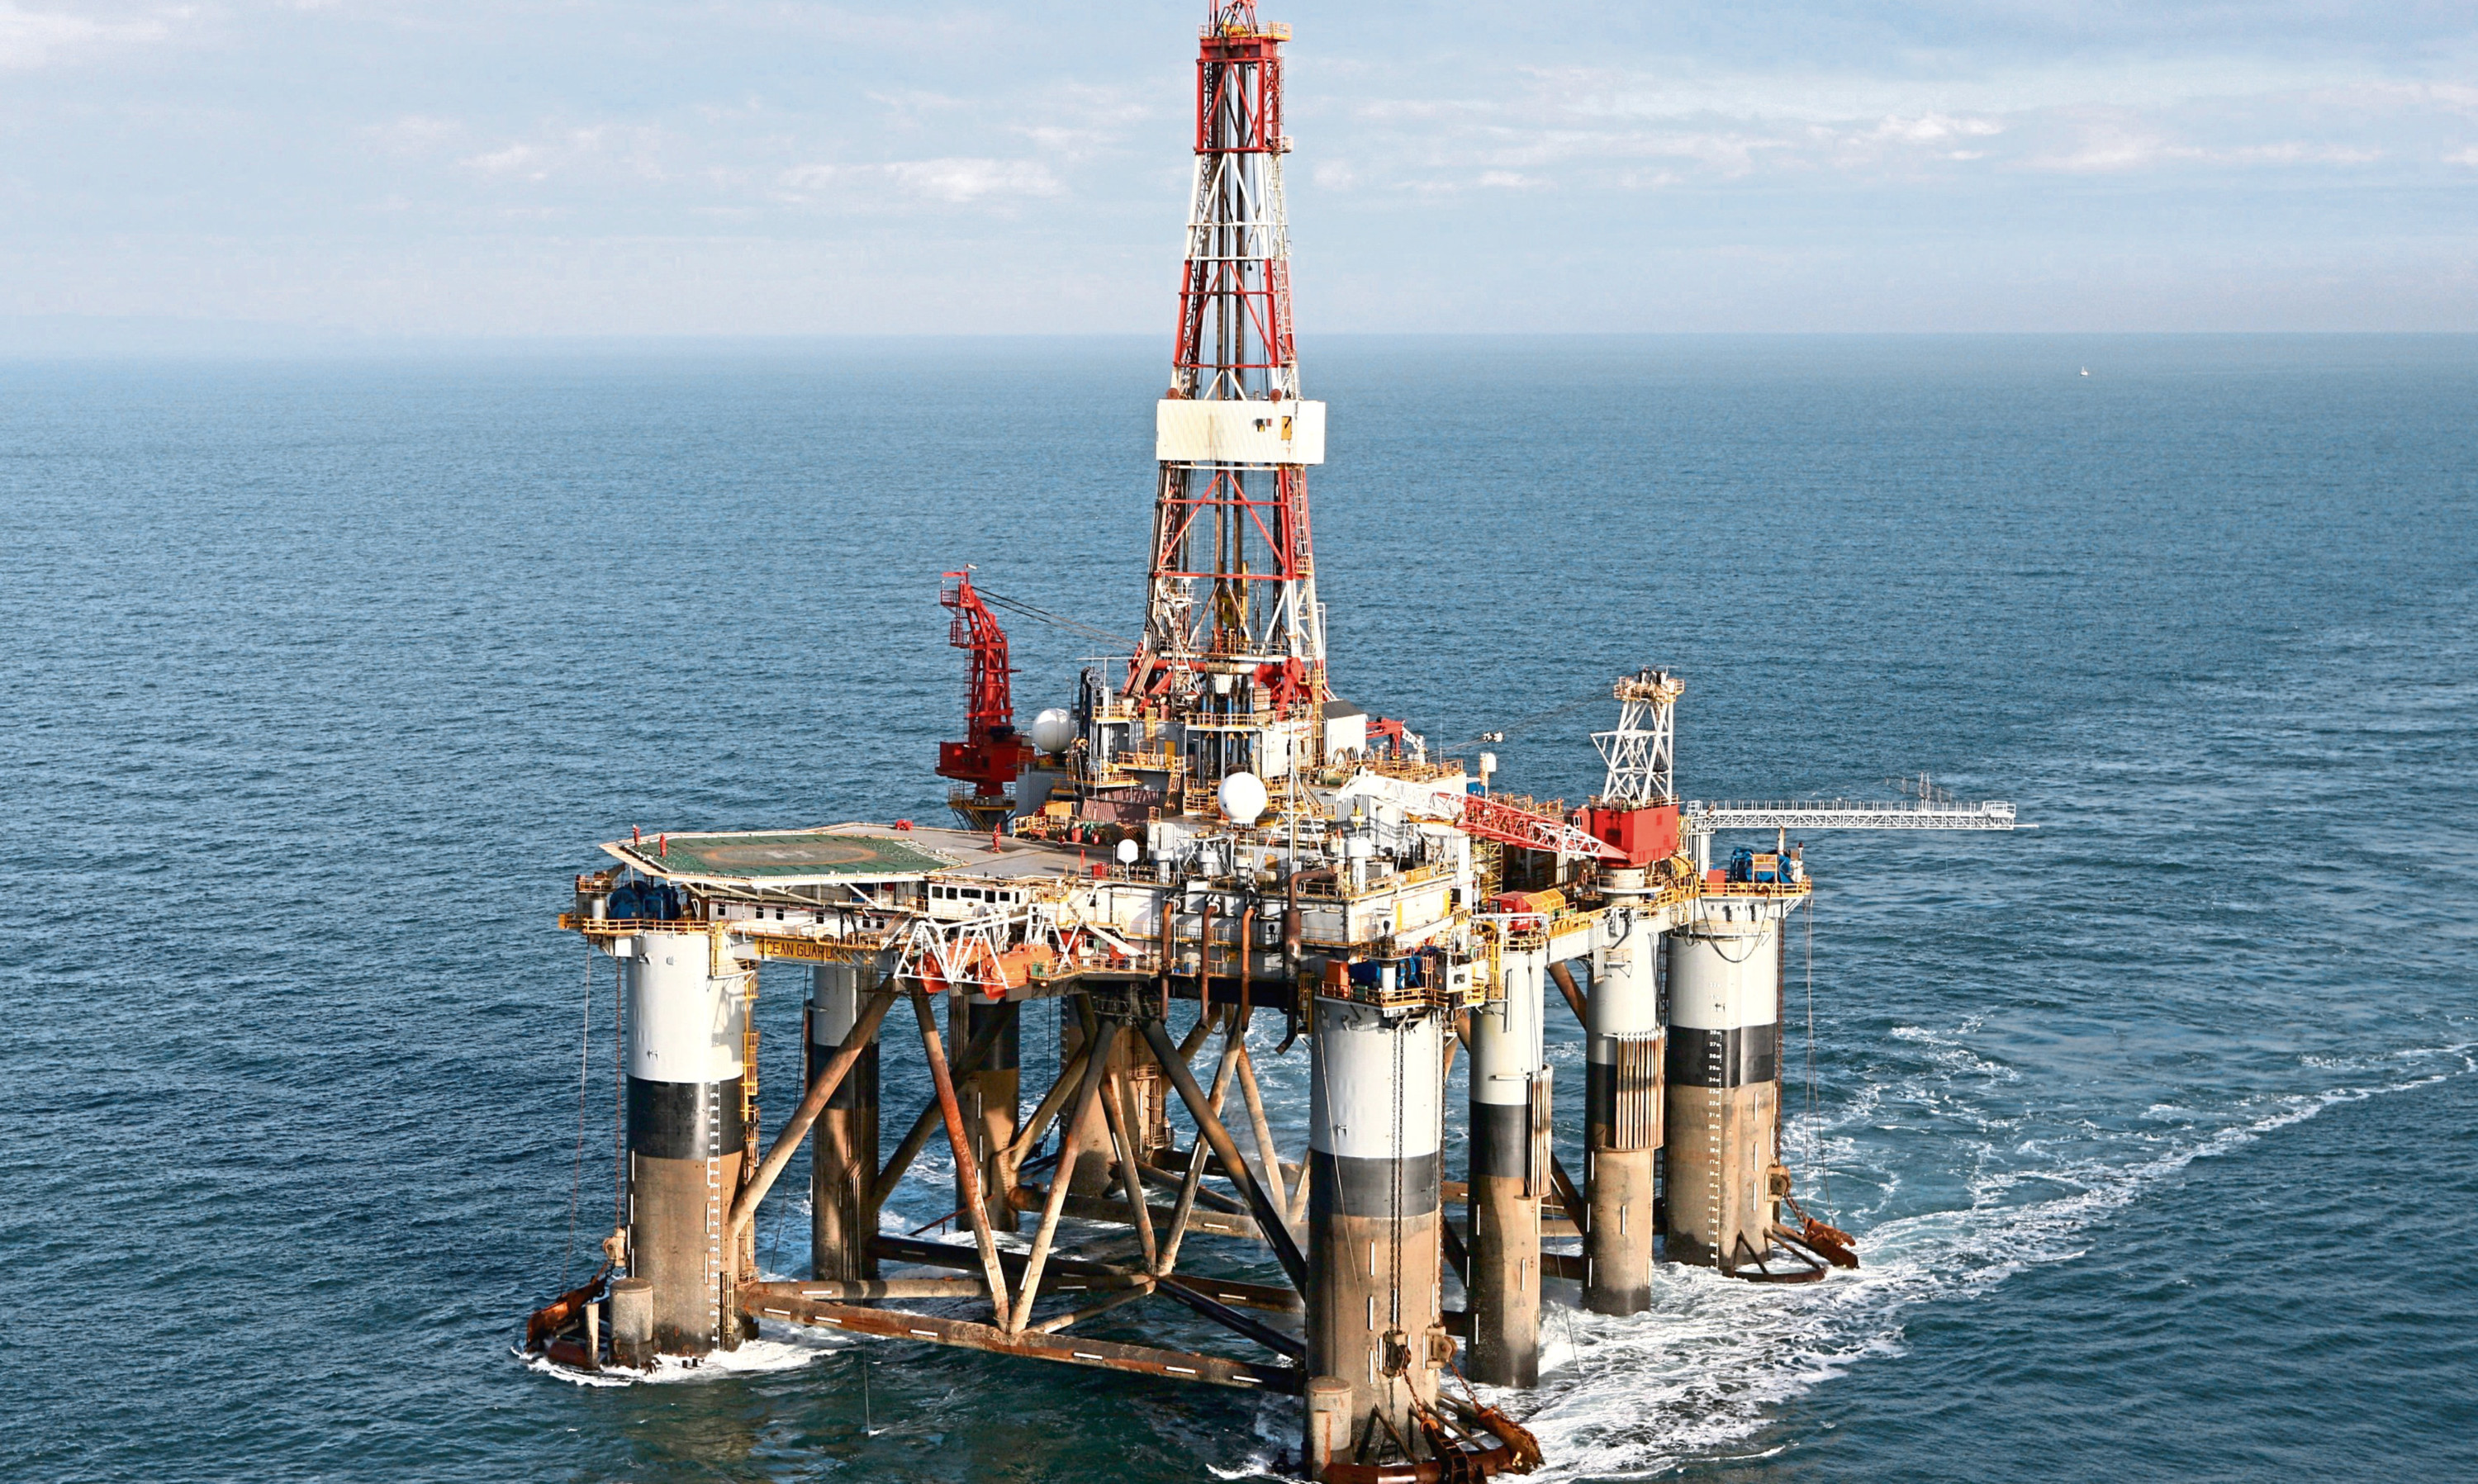 Well-Safe has purchased the Ocean Guardian semi-submersible drilling unit